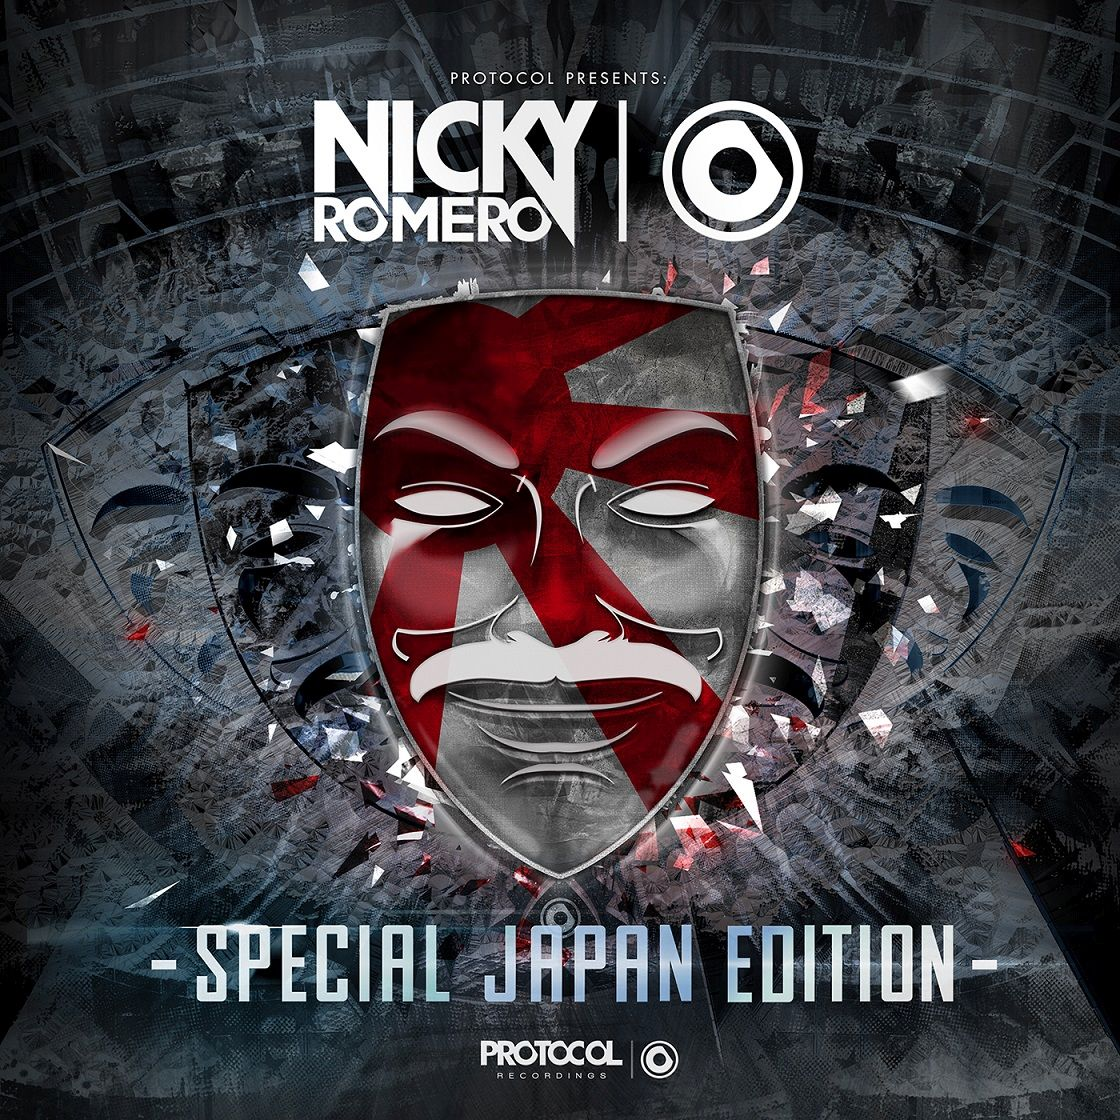 PROTOCOL PRESENTS: NICKY ROMERO -SPECIAL JAPAN EDITION-画像